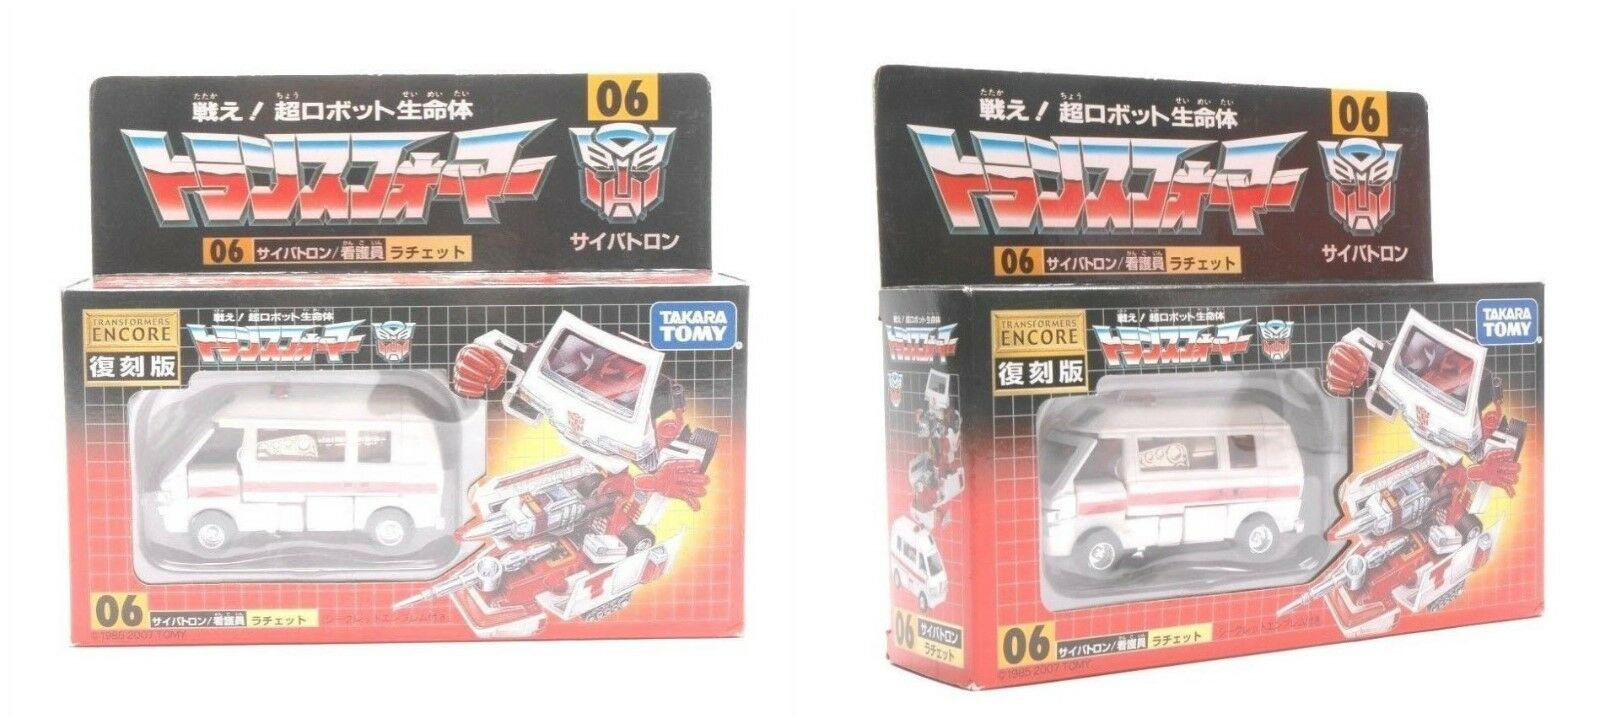 E-HOBBY RATCHET TRANSFORMERS G1 REISSUE FIGURE COLLECTORS EDITION MIB